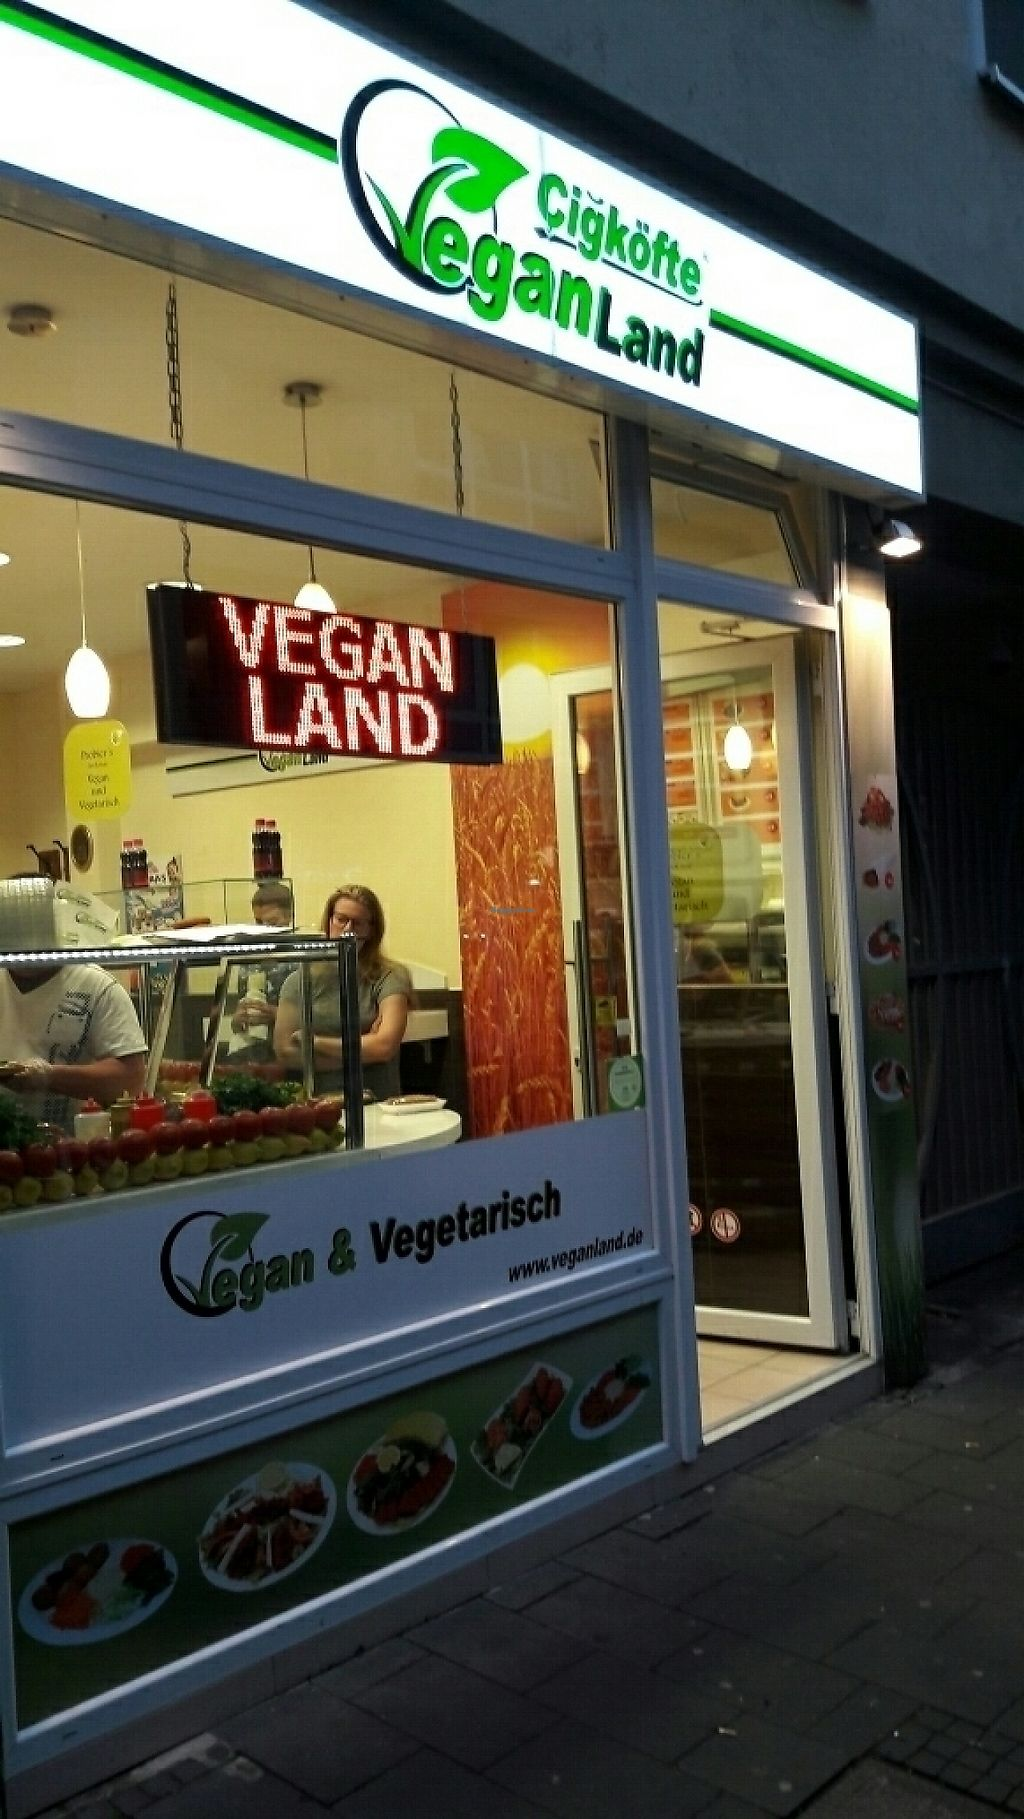 """Photo of Cigkofte Veganland - Weidengasse  by <a href=""""/members/profile/piffelina"""">piffelina</a> <br/>Hard to miss? <br/> June 2, 2017  - <a href='/contact/abuse/image/31100/265112'>Report</a>"""